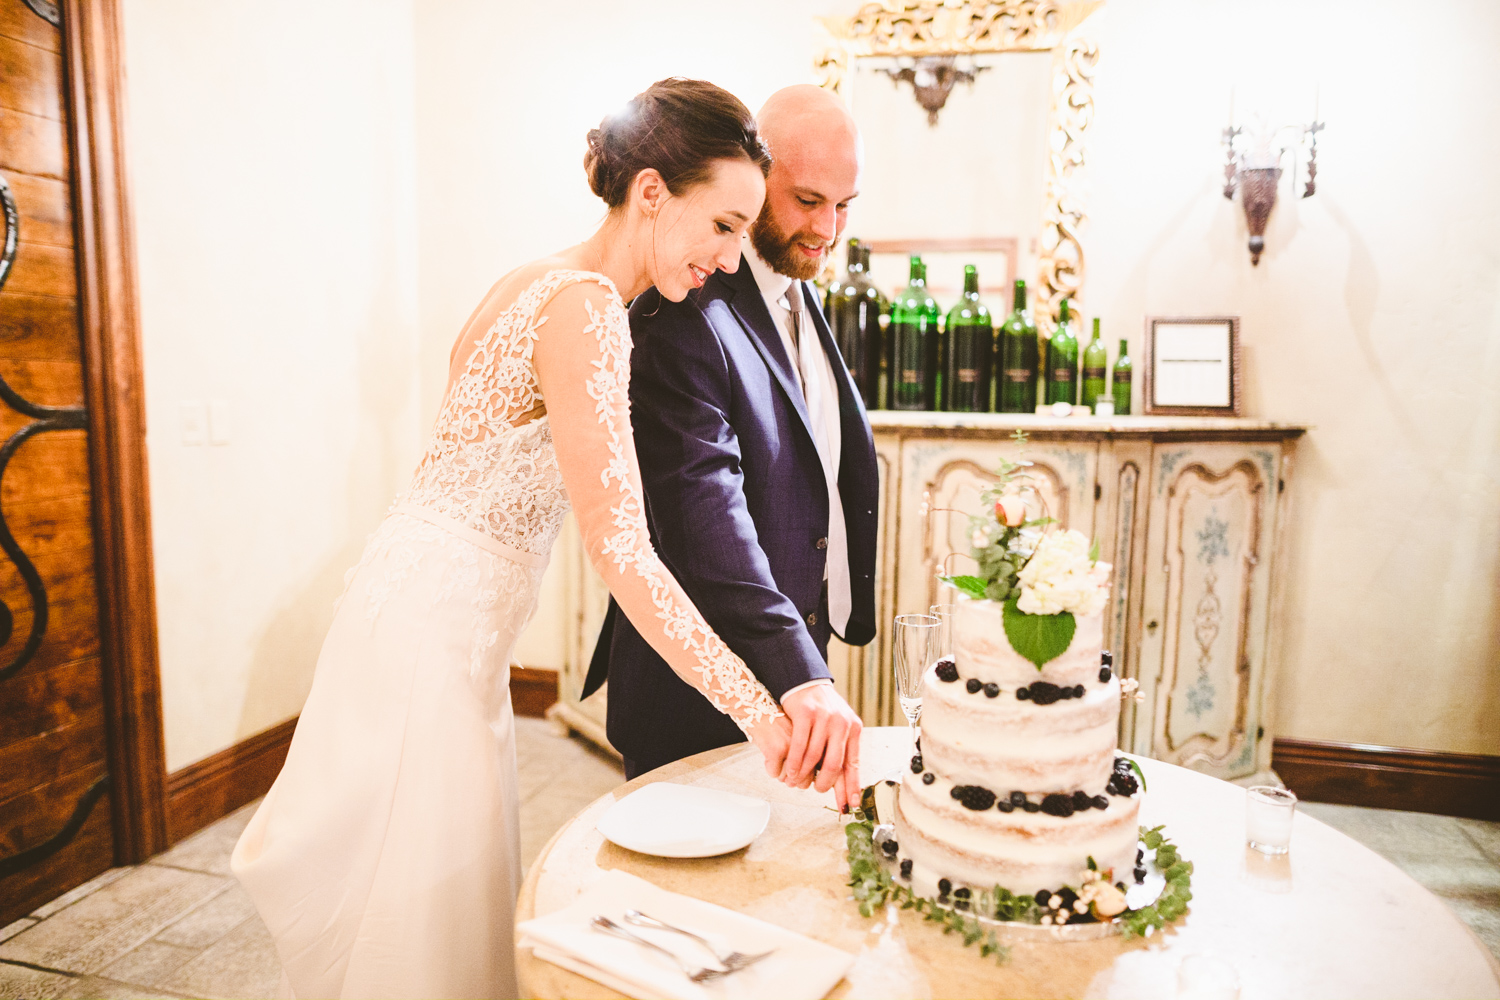 034 - bride and groom cut the cake at clos la chance winery.jpg